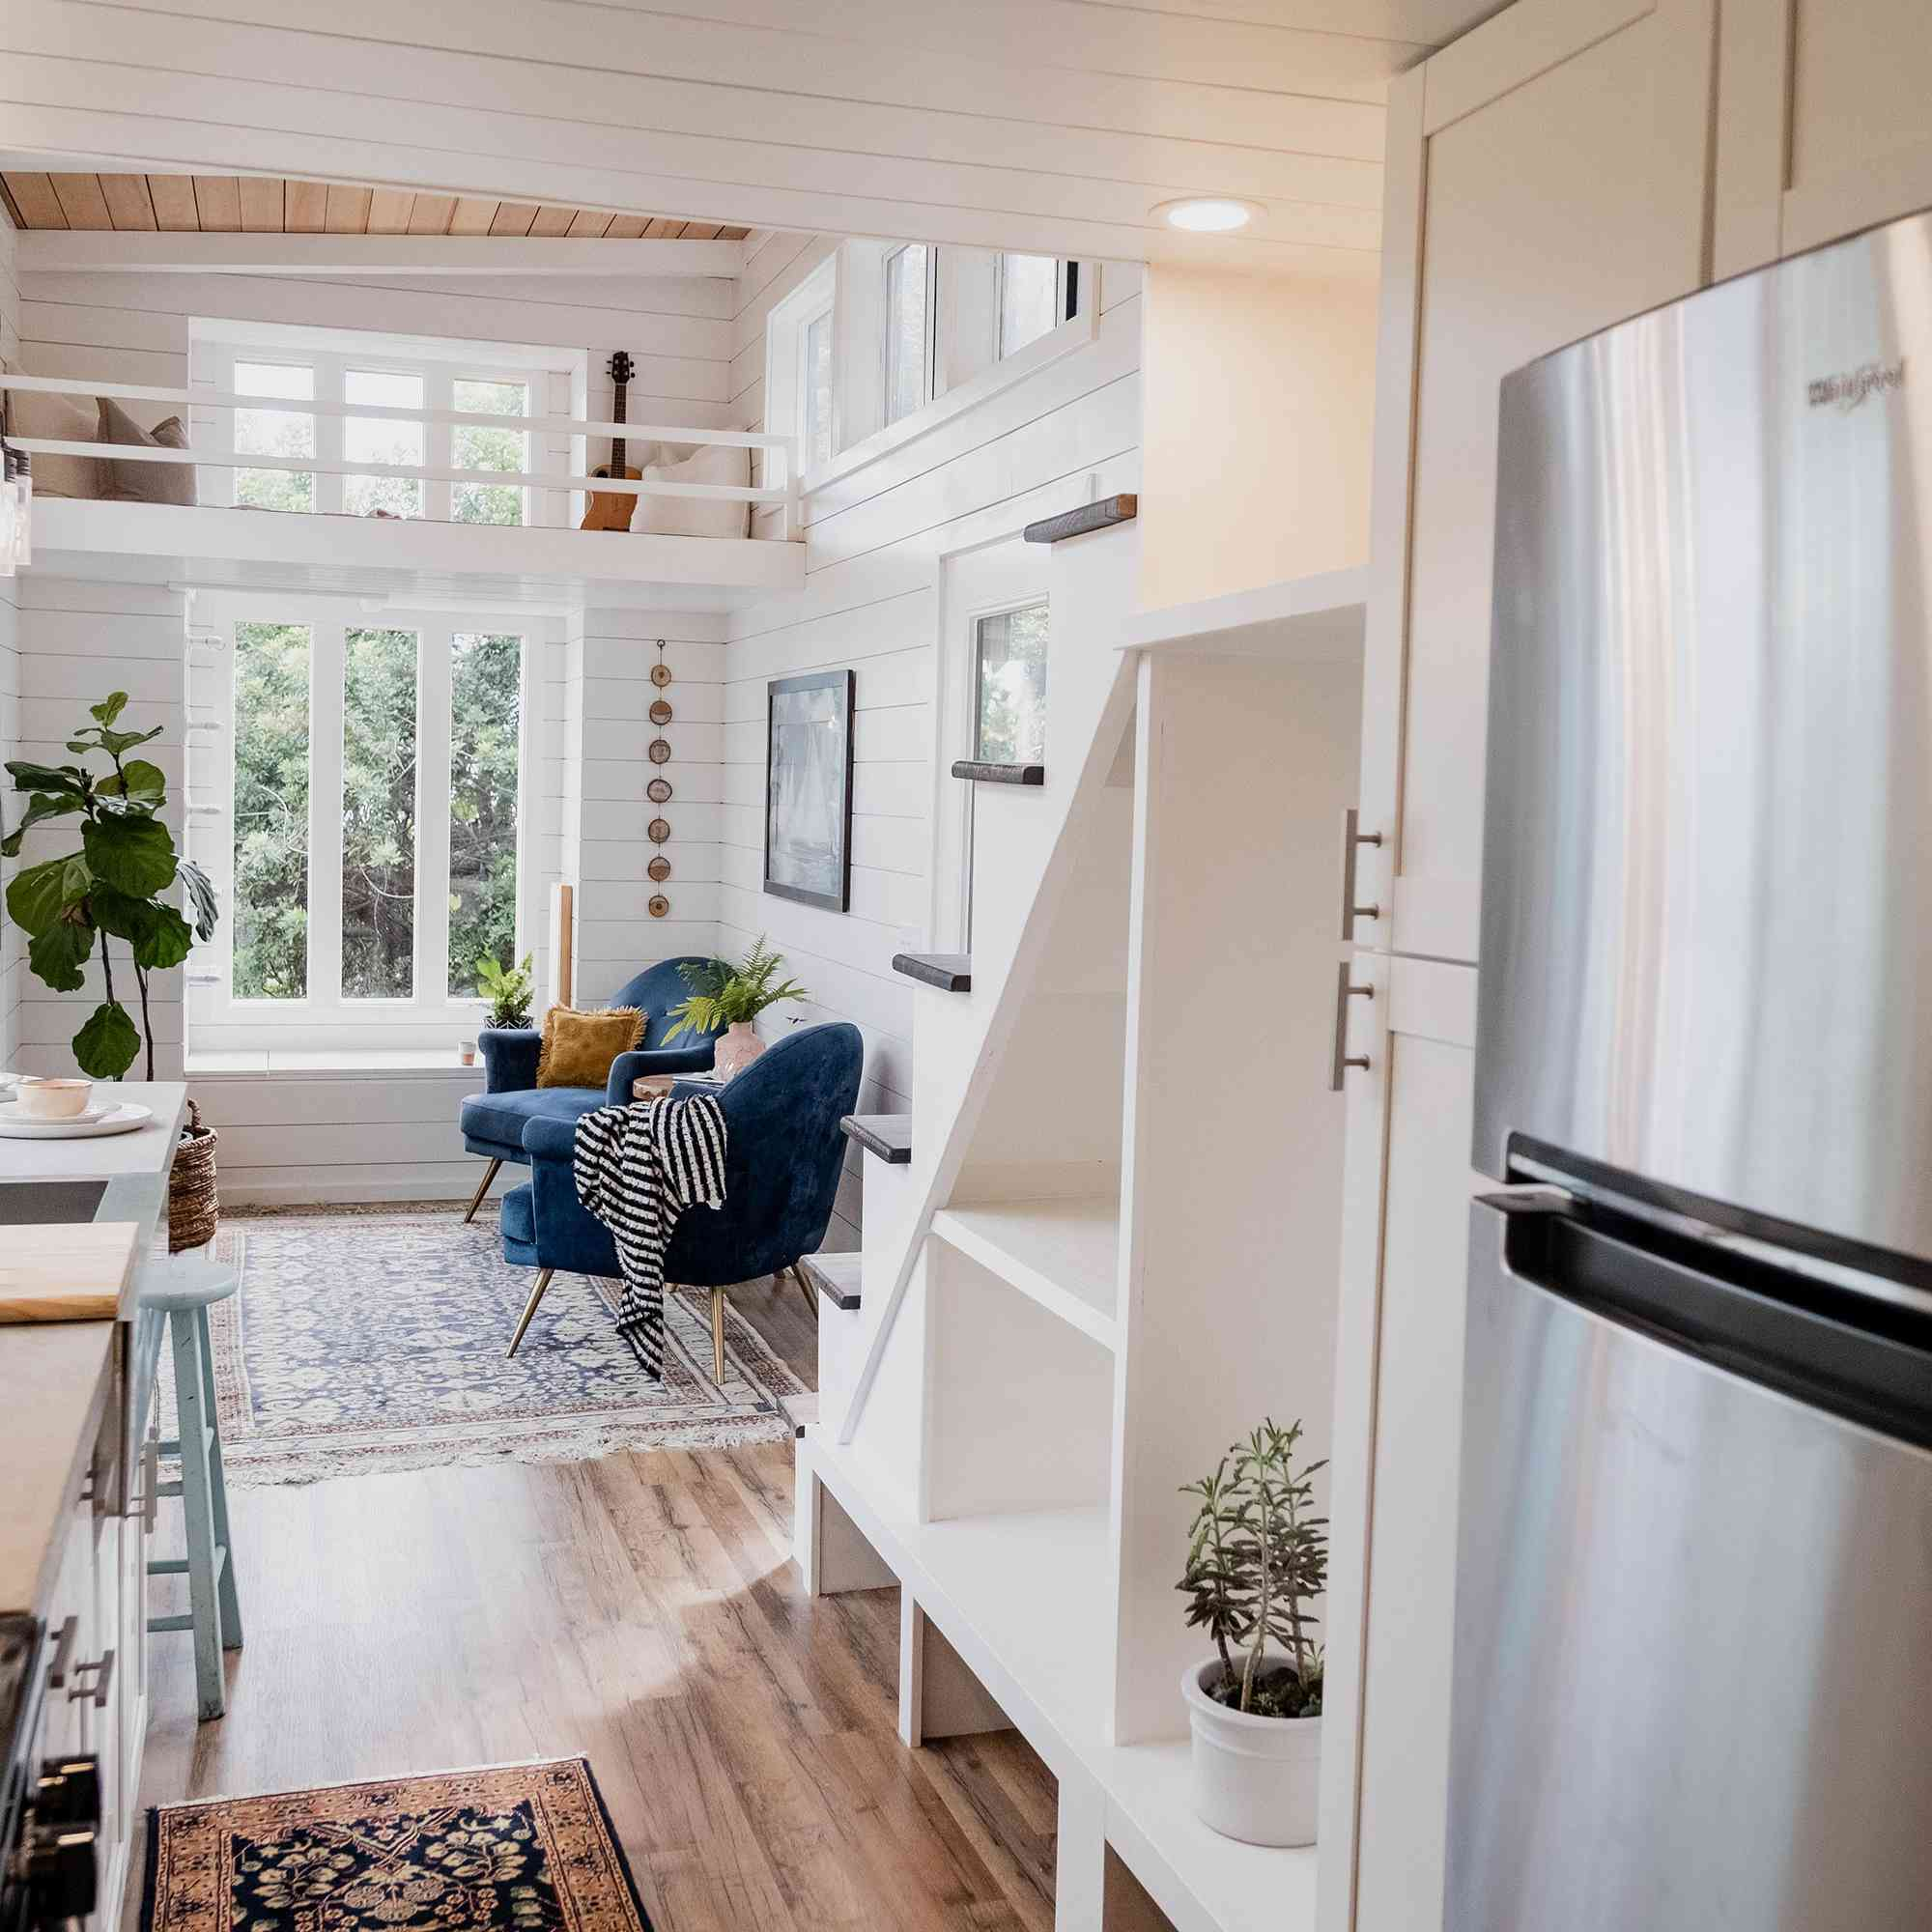 tiny house hawaii Taylor and Michaella McClendon stair storage